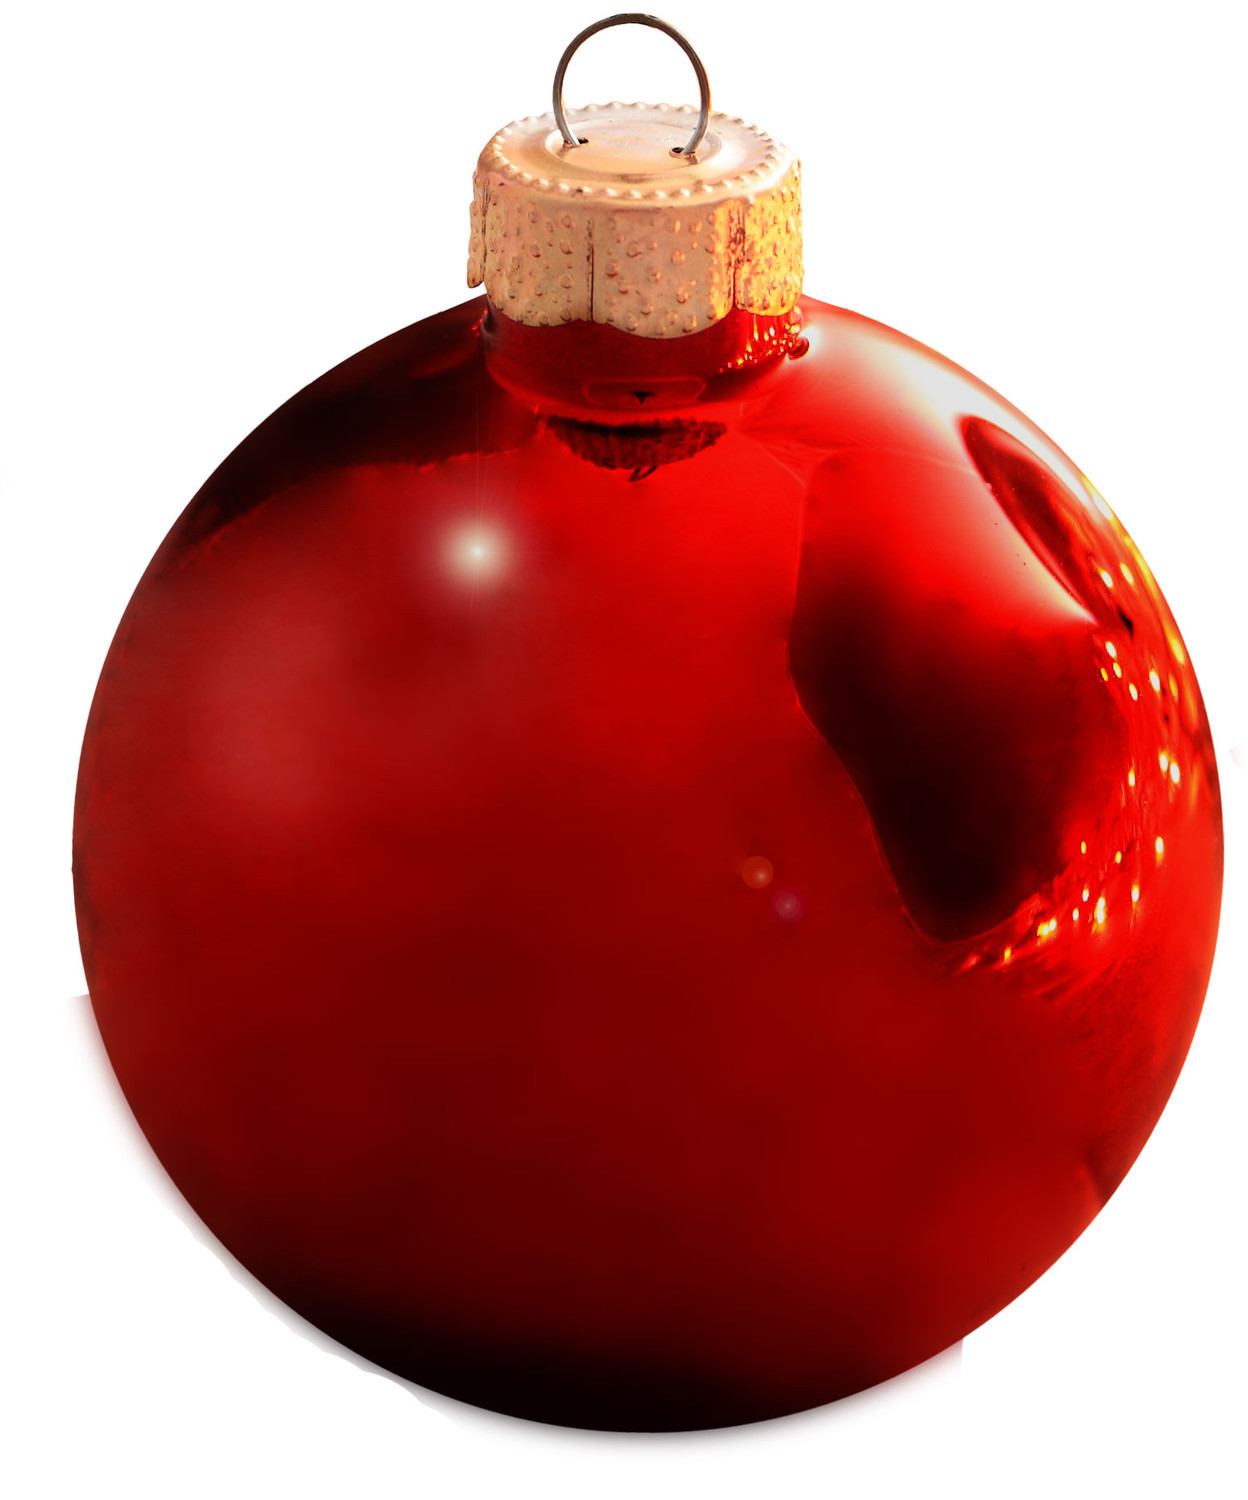 Christmas ornaments Luxury Red Christmas Tree ornaments – Happy Holidays Of Incredible 48 Images Christmas ornaments